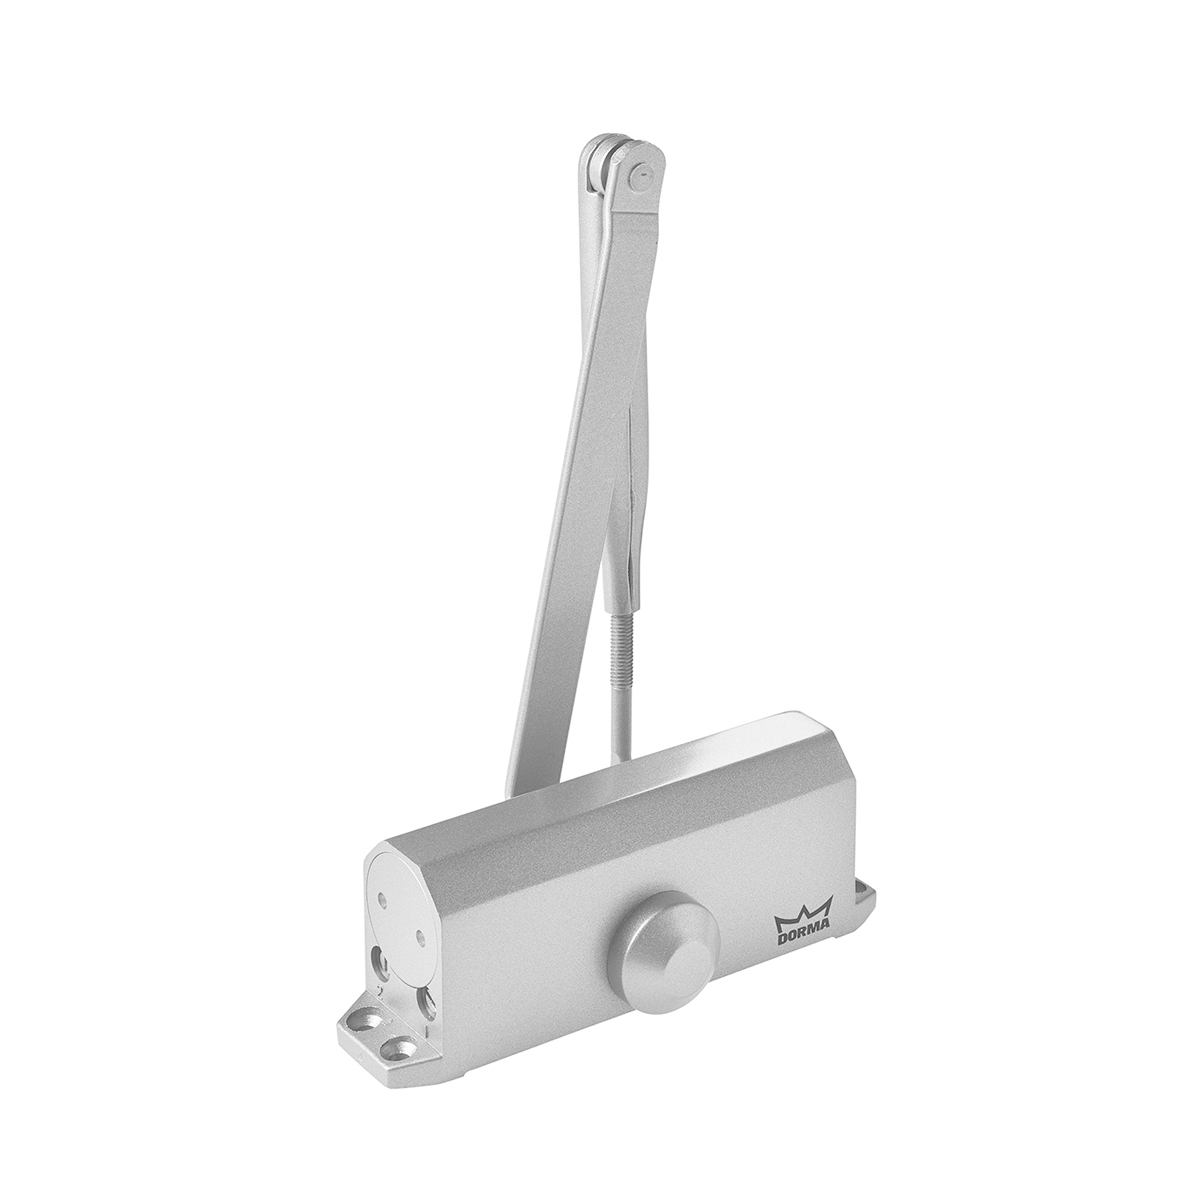 Door Closer Dorma Tipe TS 77 dan Door Closer dorma TS 77 HO ( Hold Open )